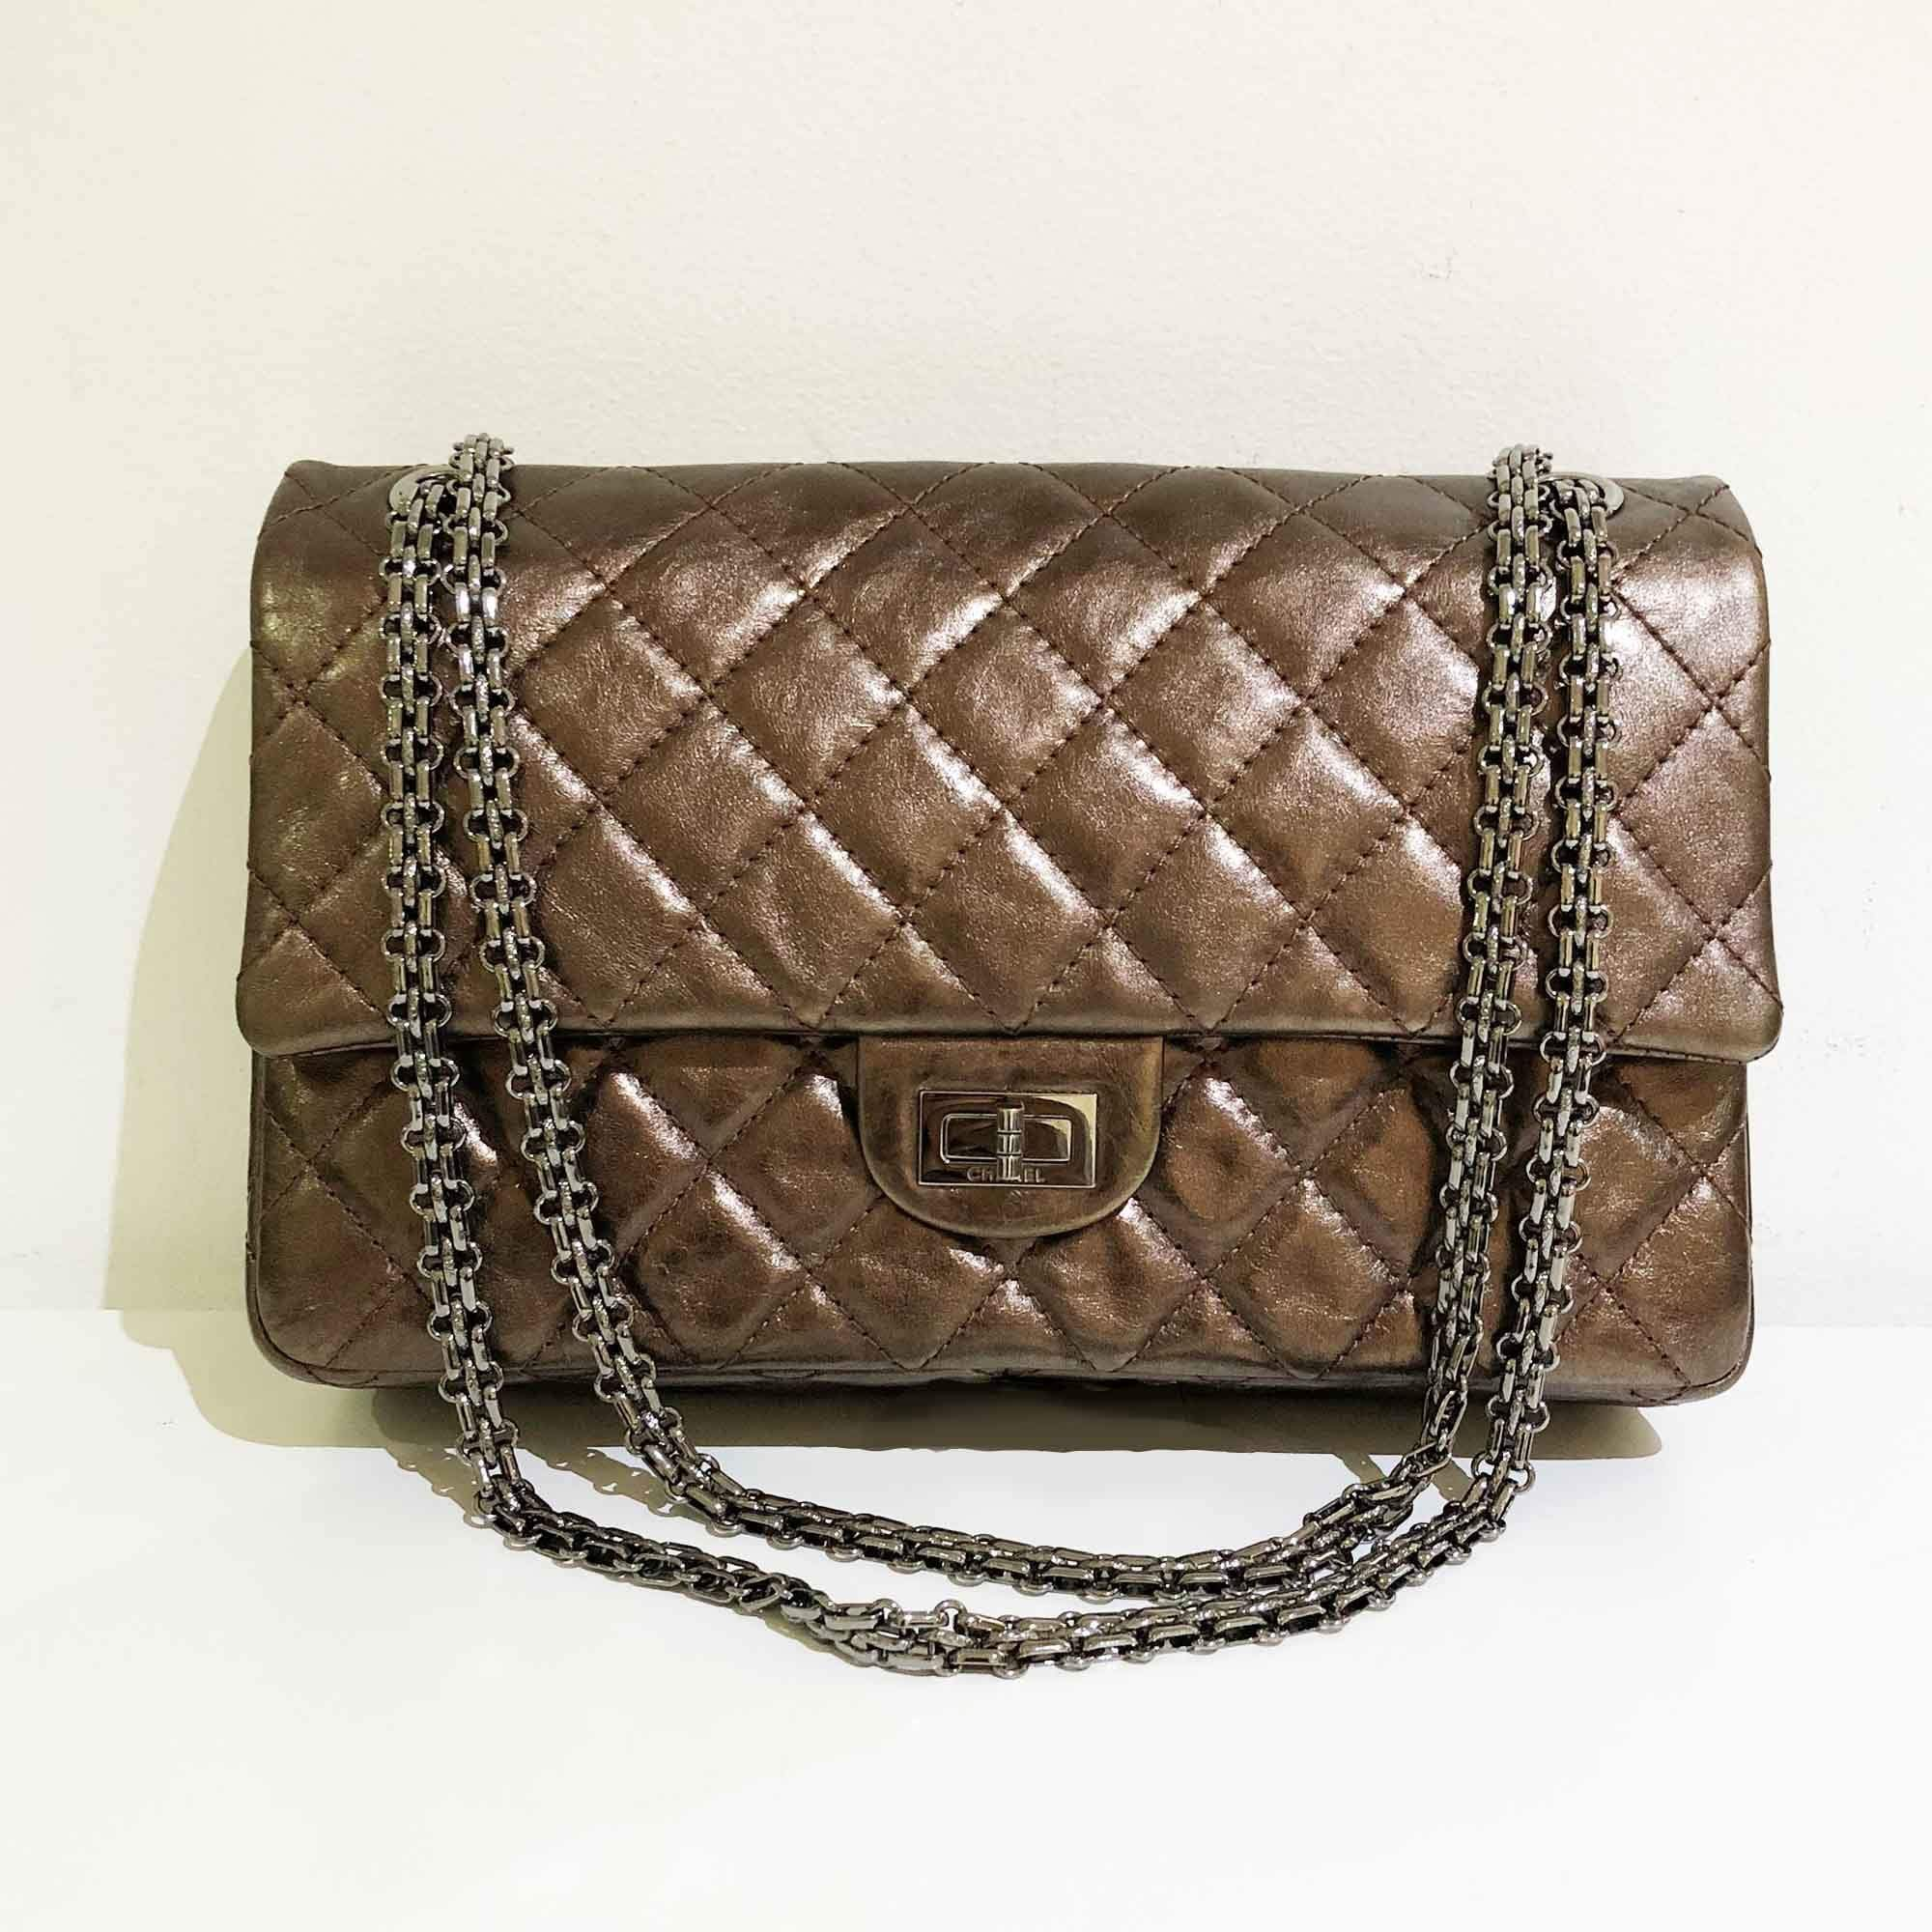 91c06081005a Chanel Bronze Leather Medium 2.55 Reissue Double Flap Bag – Garderobe